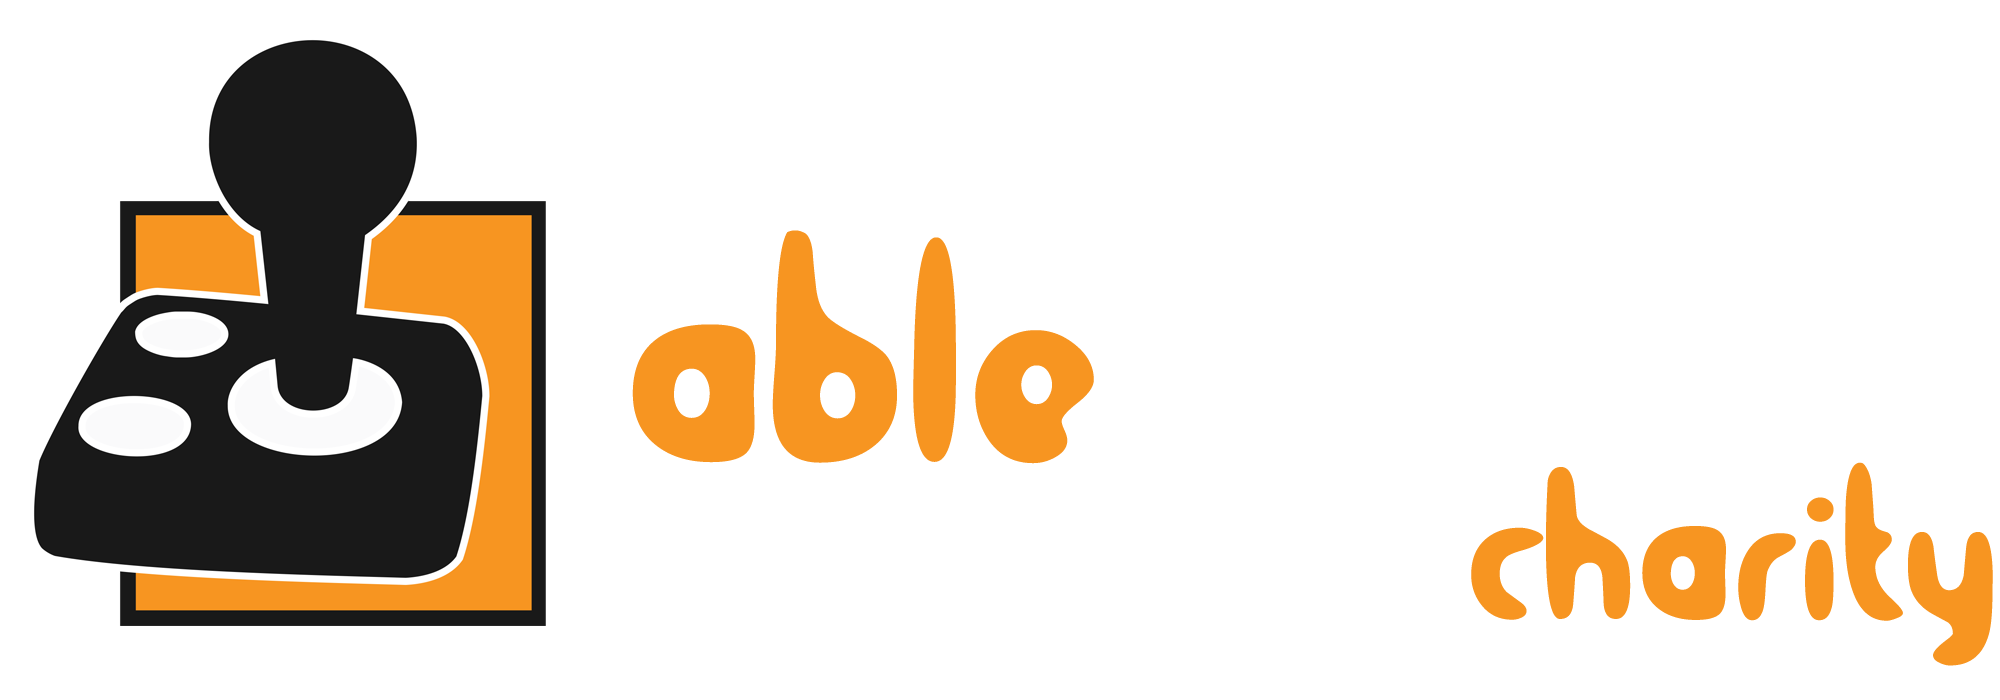 AbleGamers-Total-Logo-HD-White.png